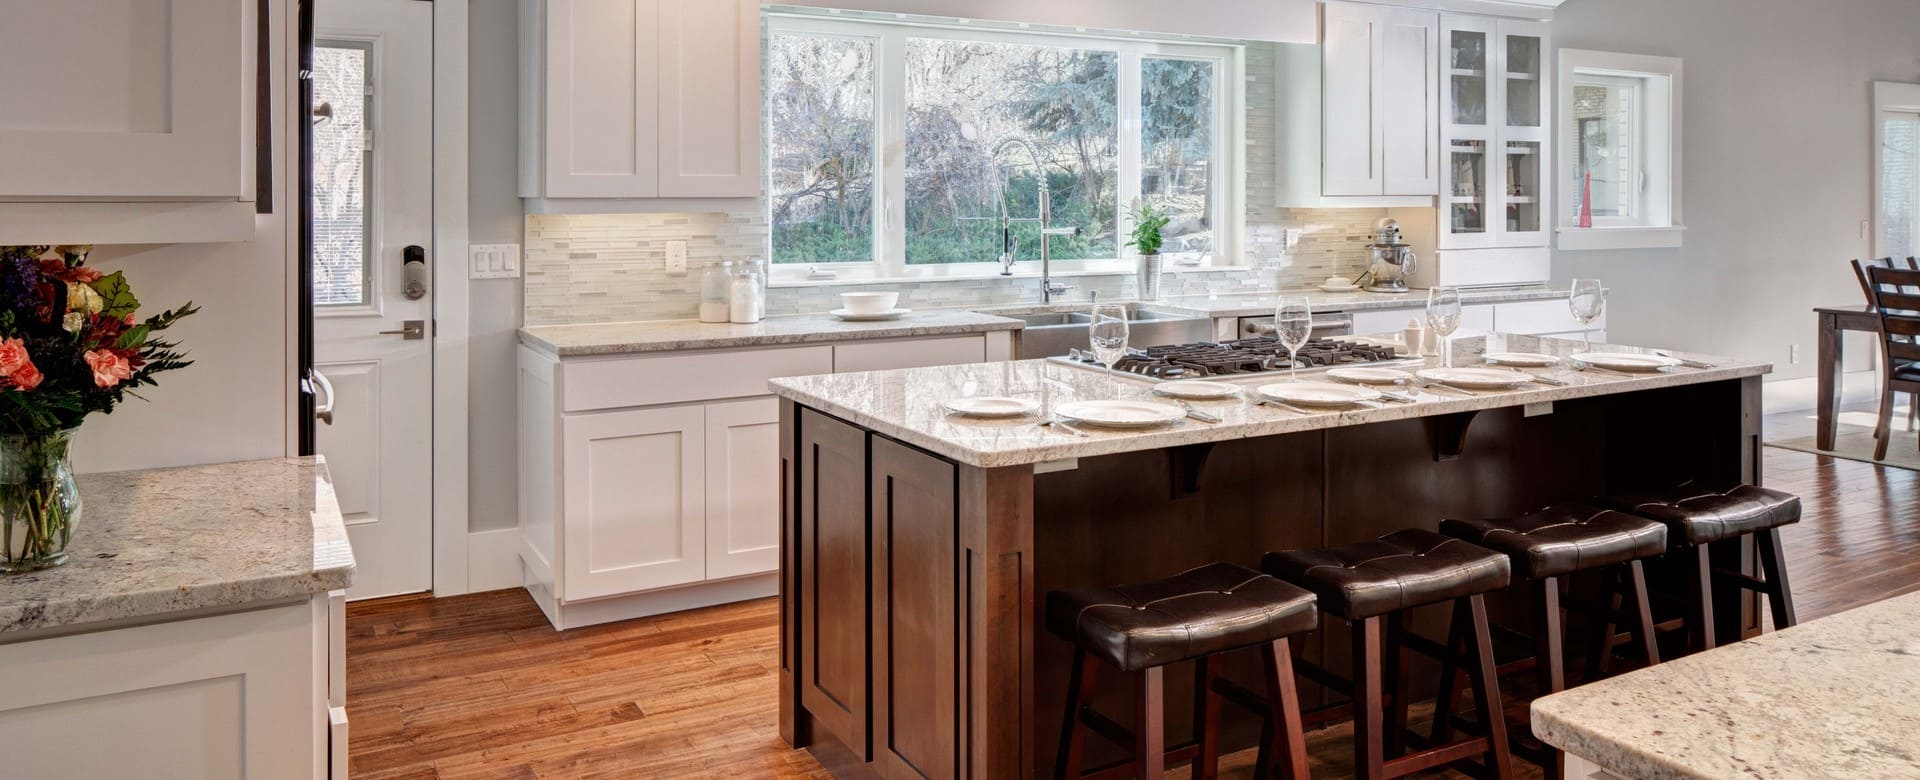 Good Kitchen Cabinetry Salt Lake City